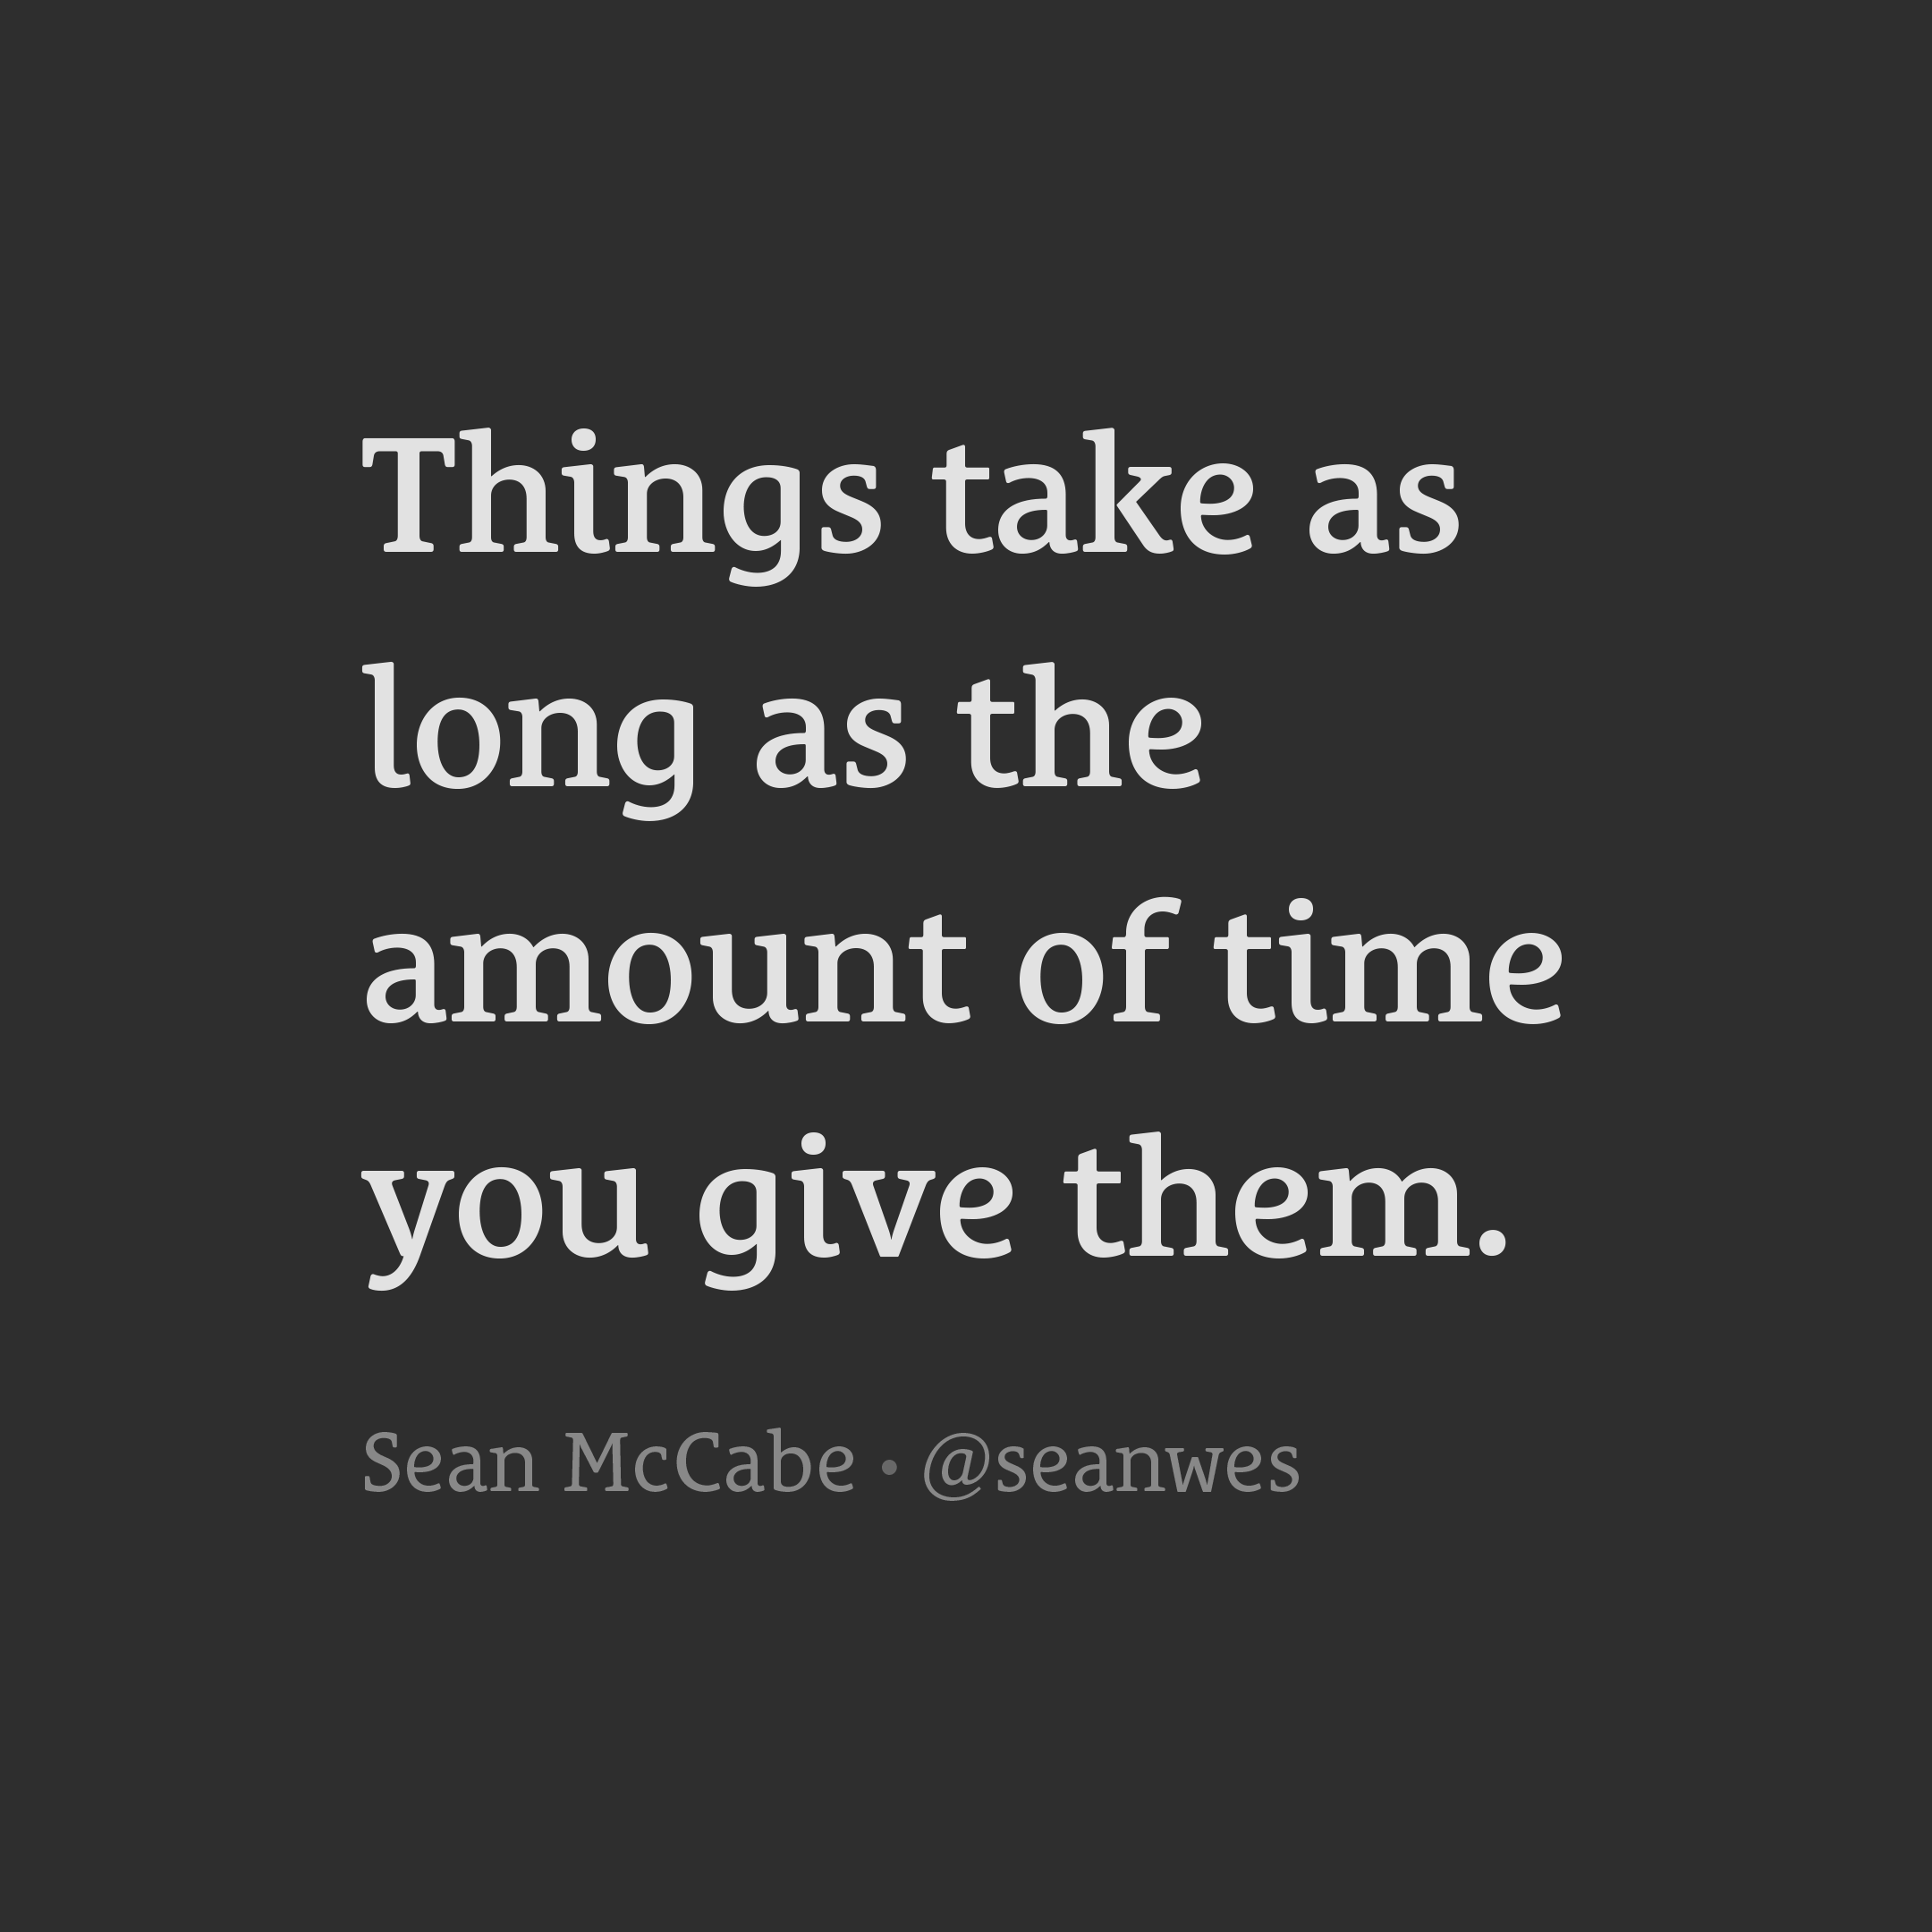 Things take as long as the amount of time you give them.